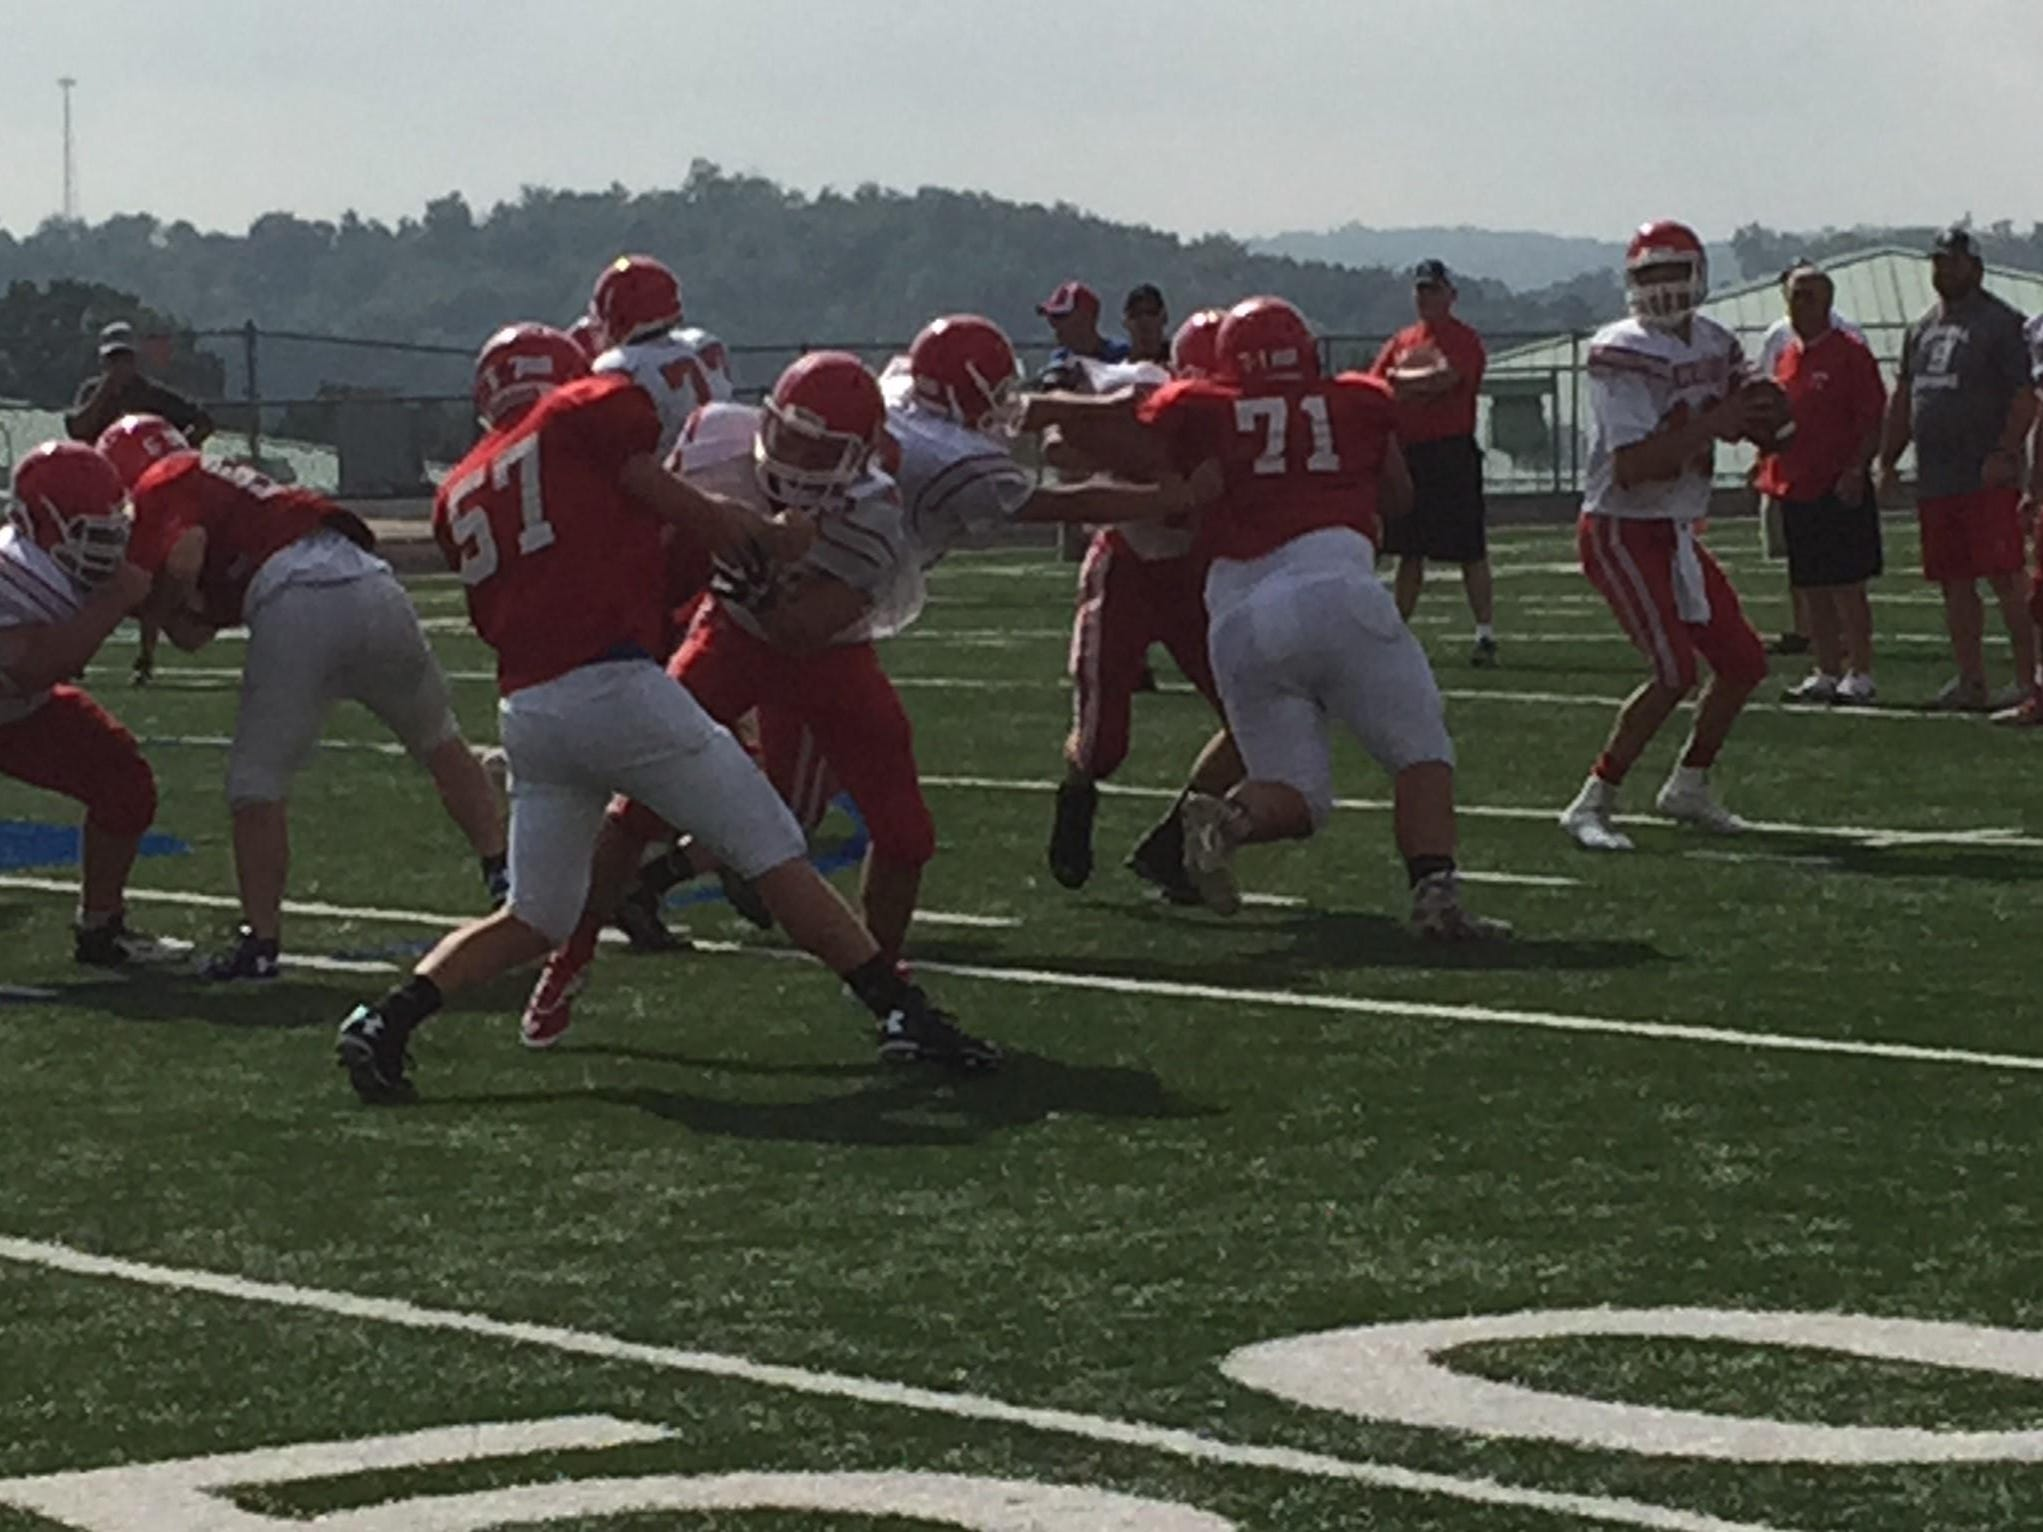 Licking Valley's Jaqui VanMeter (71) gets double-teamed as he pressures Sheridan quarterback Dylan Dupler during Tuesday's scrimmage at Randy Baughman Stadium.